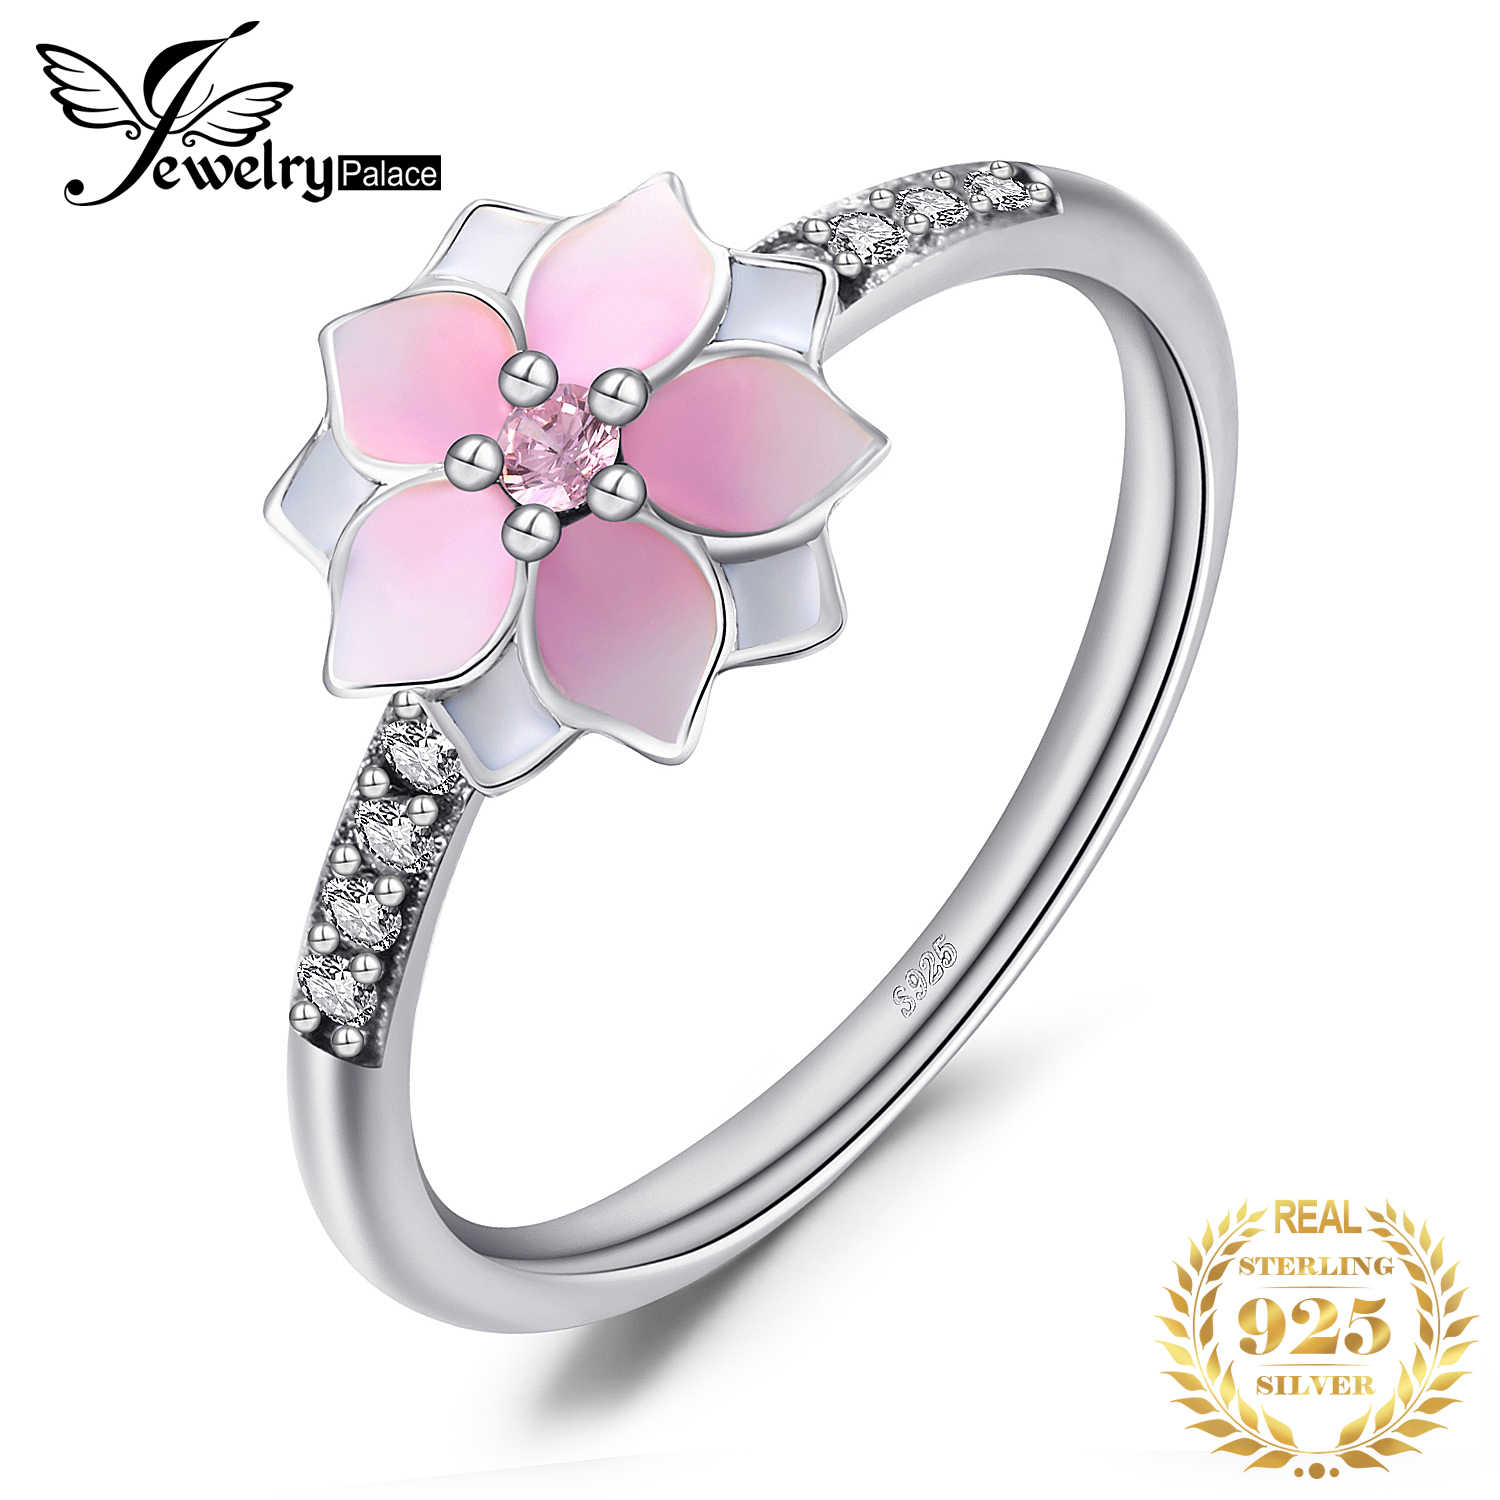 Jewelrypalace 925 Sterling Silver Magnolia Cubic Zirconia Gradient Pink Enamel Rings For Women Fashion Wedding Ring Girls